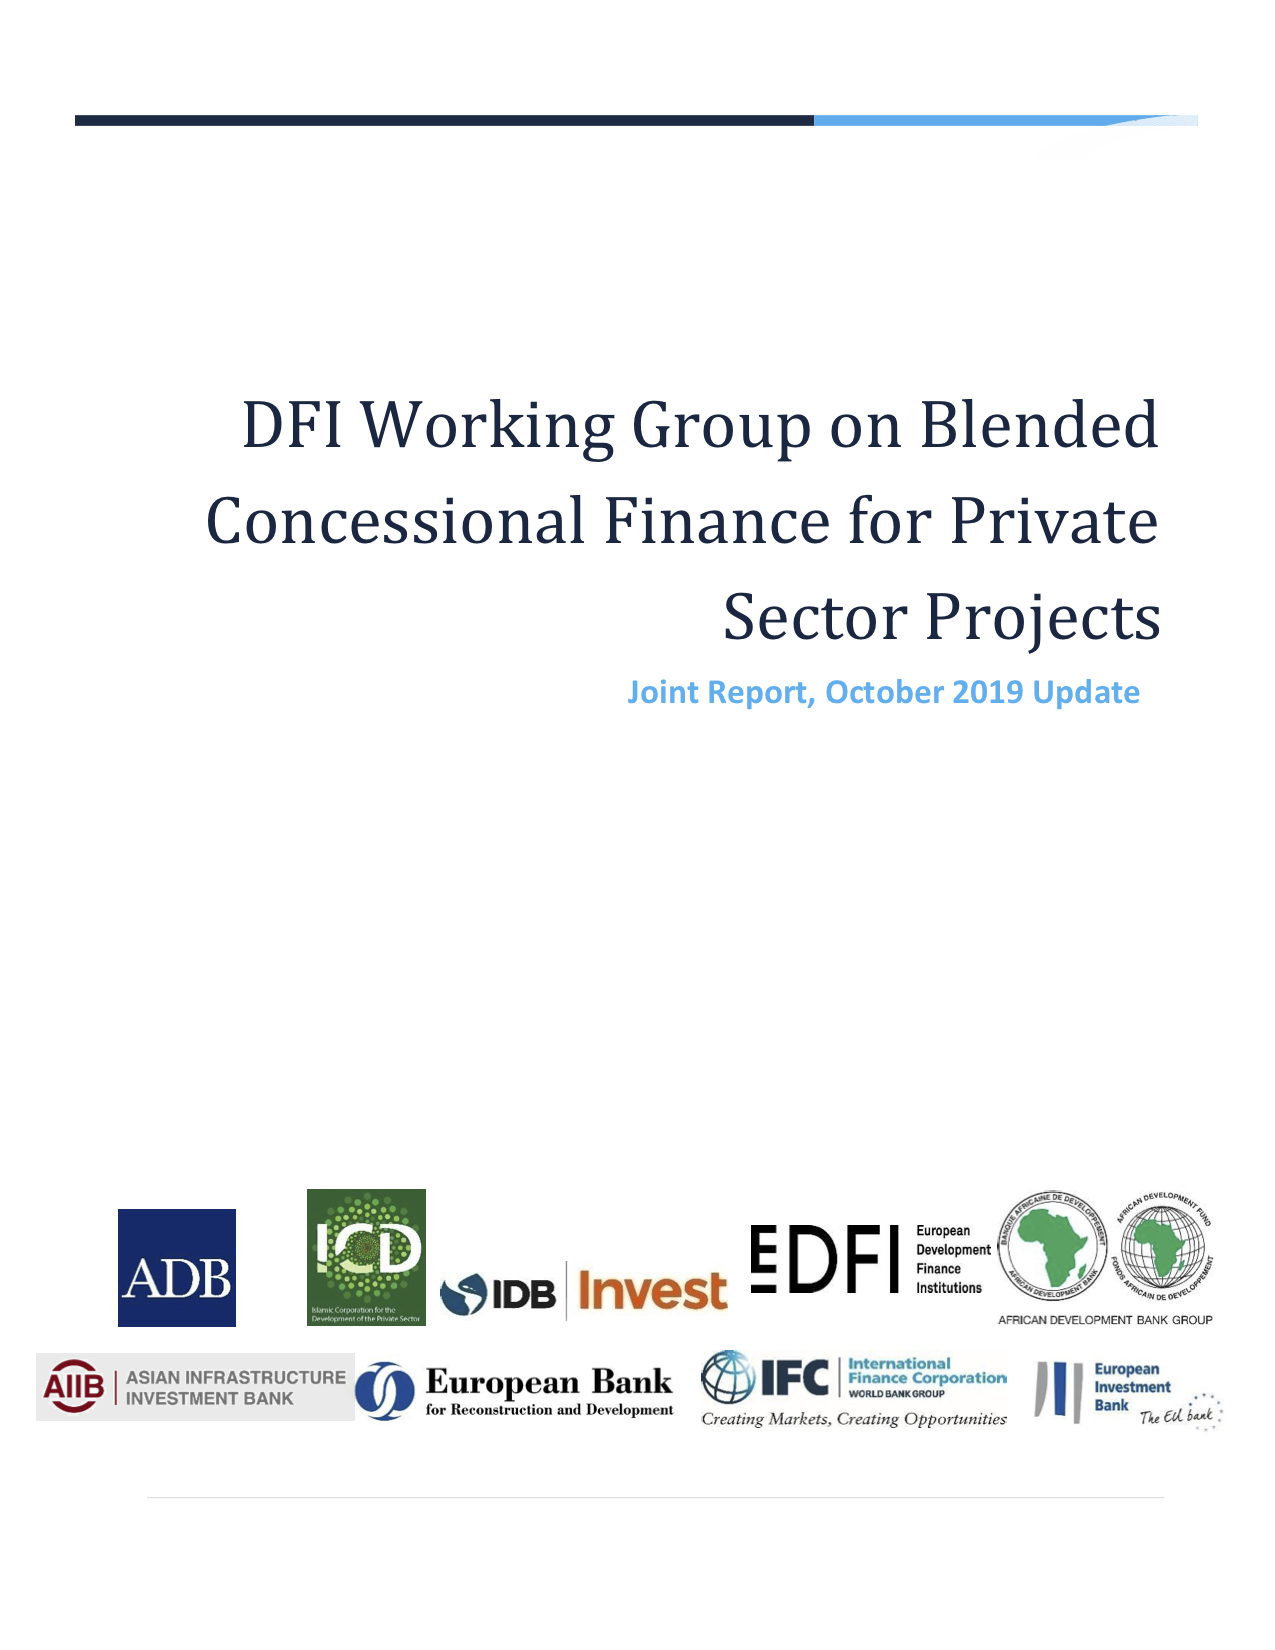 DFI Working Group on Blended Concessional Finance for Private Sector Projects Joint Report, October 2019 Update